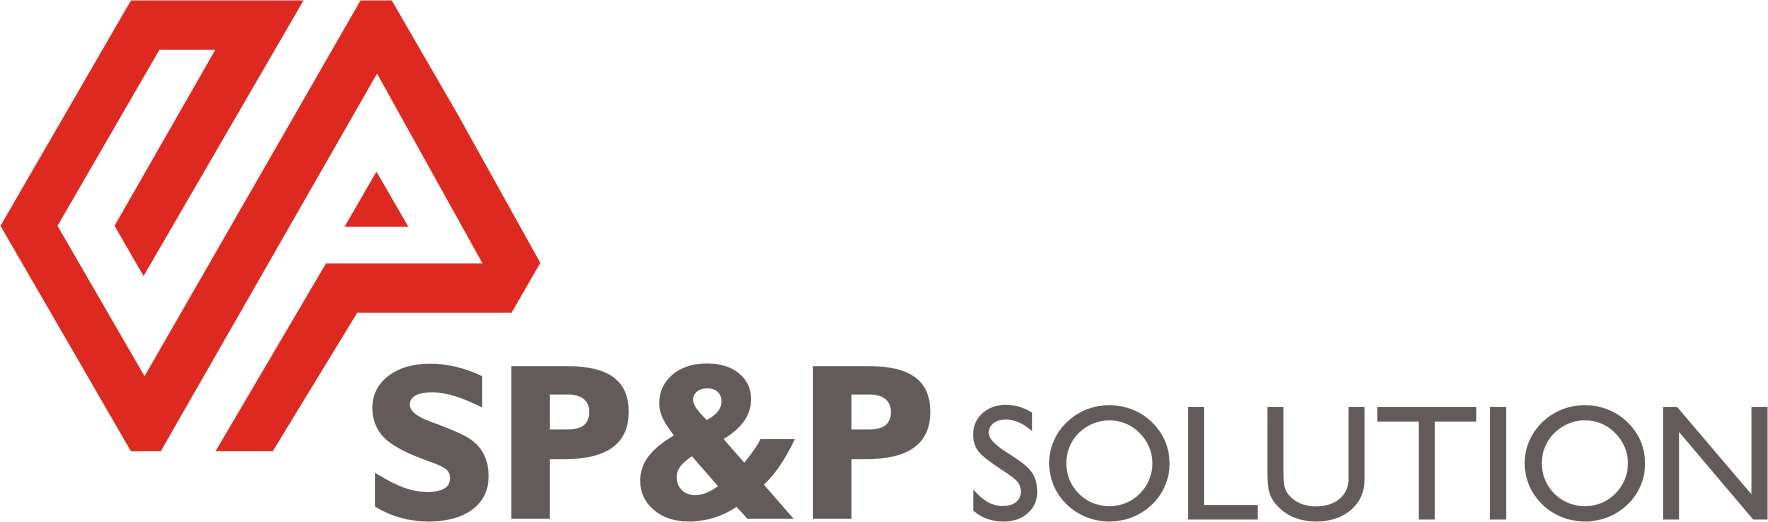 sp&p solution logo